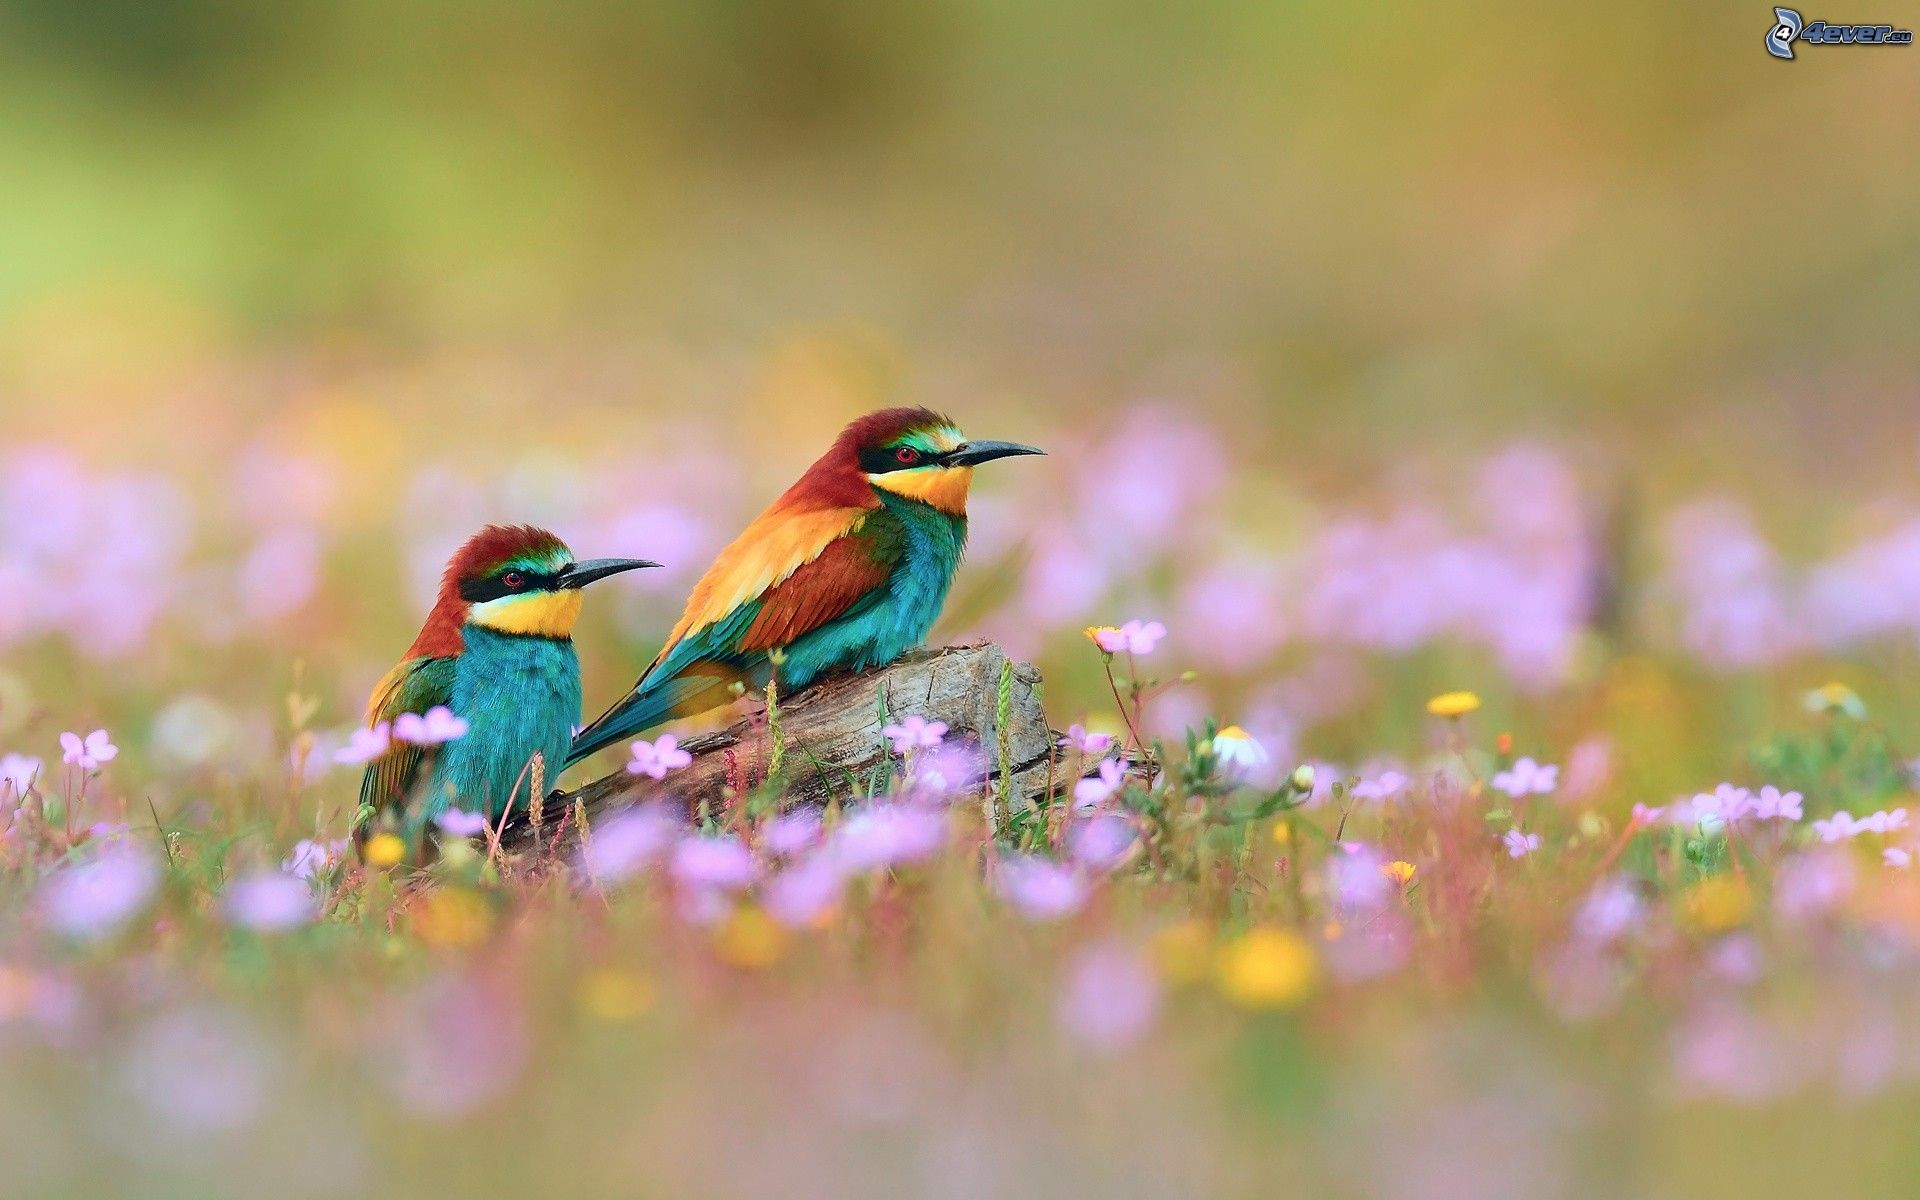 Natural Images Of Love Birds Hd